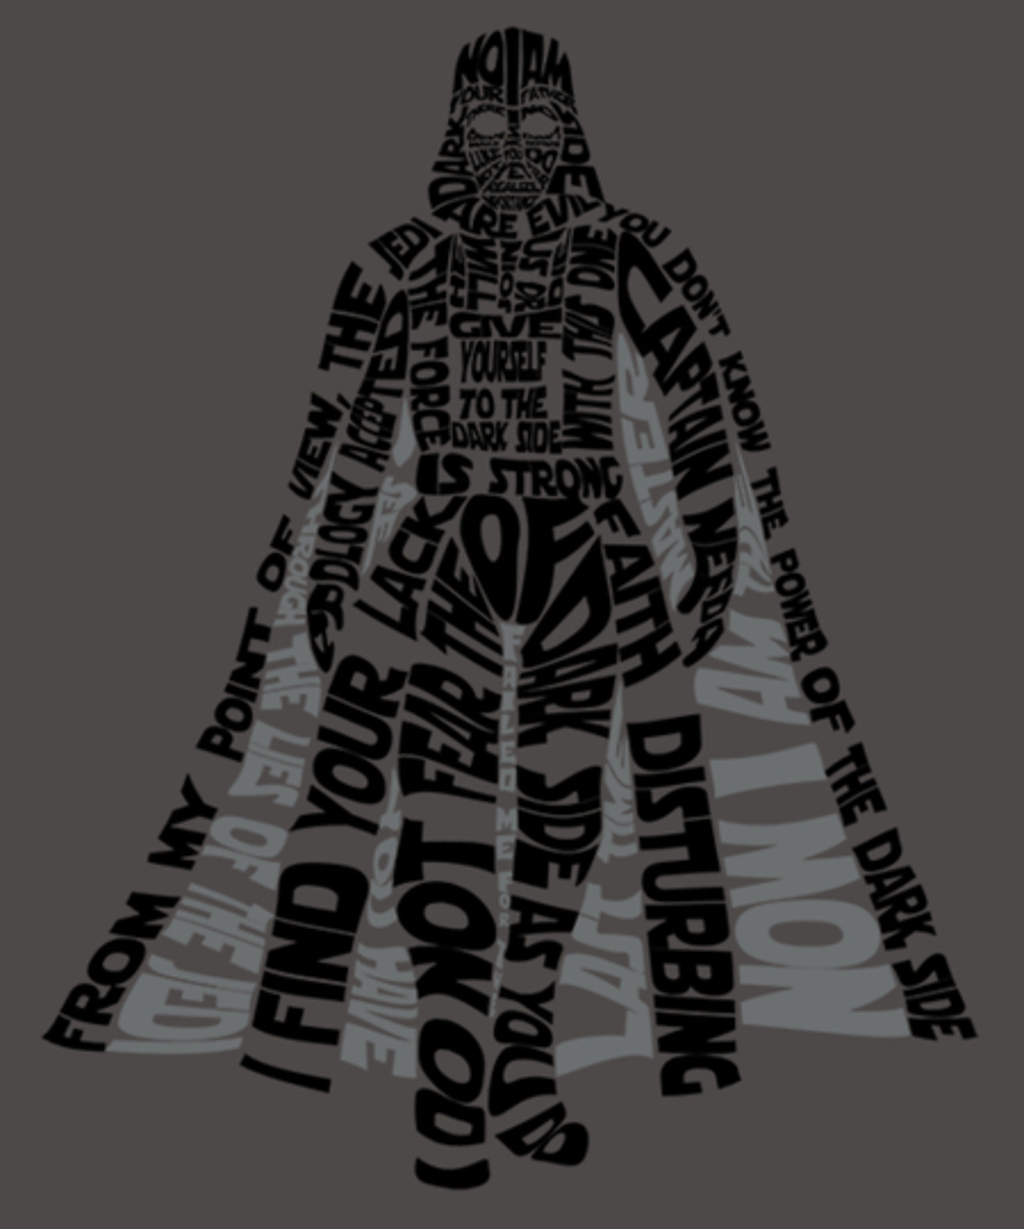 Qwertee: Dark Lord